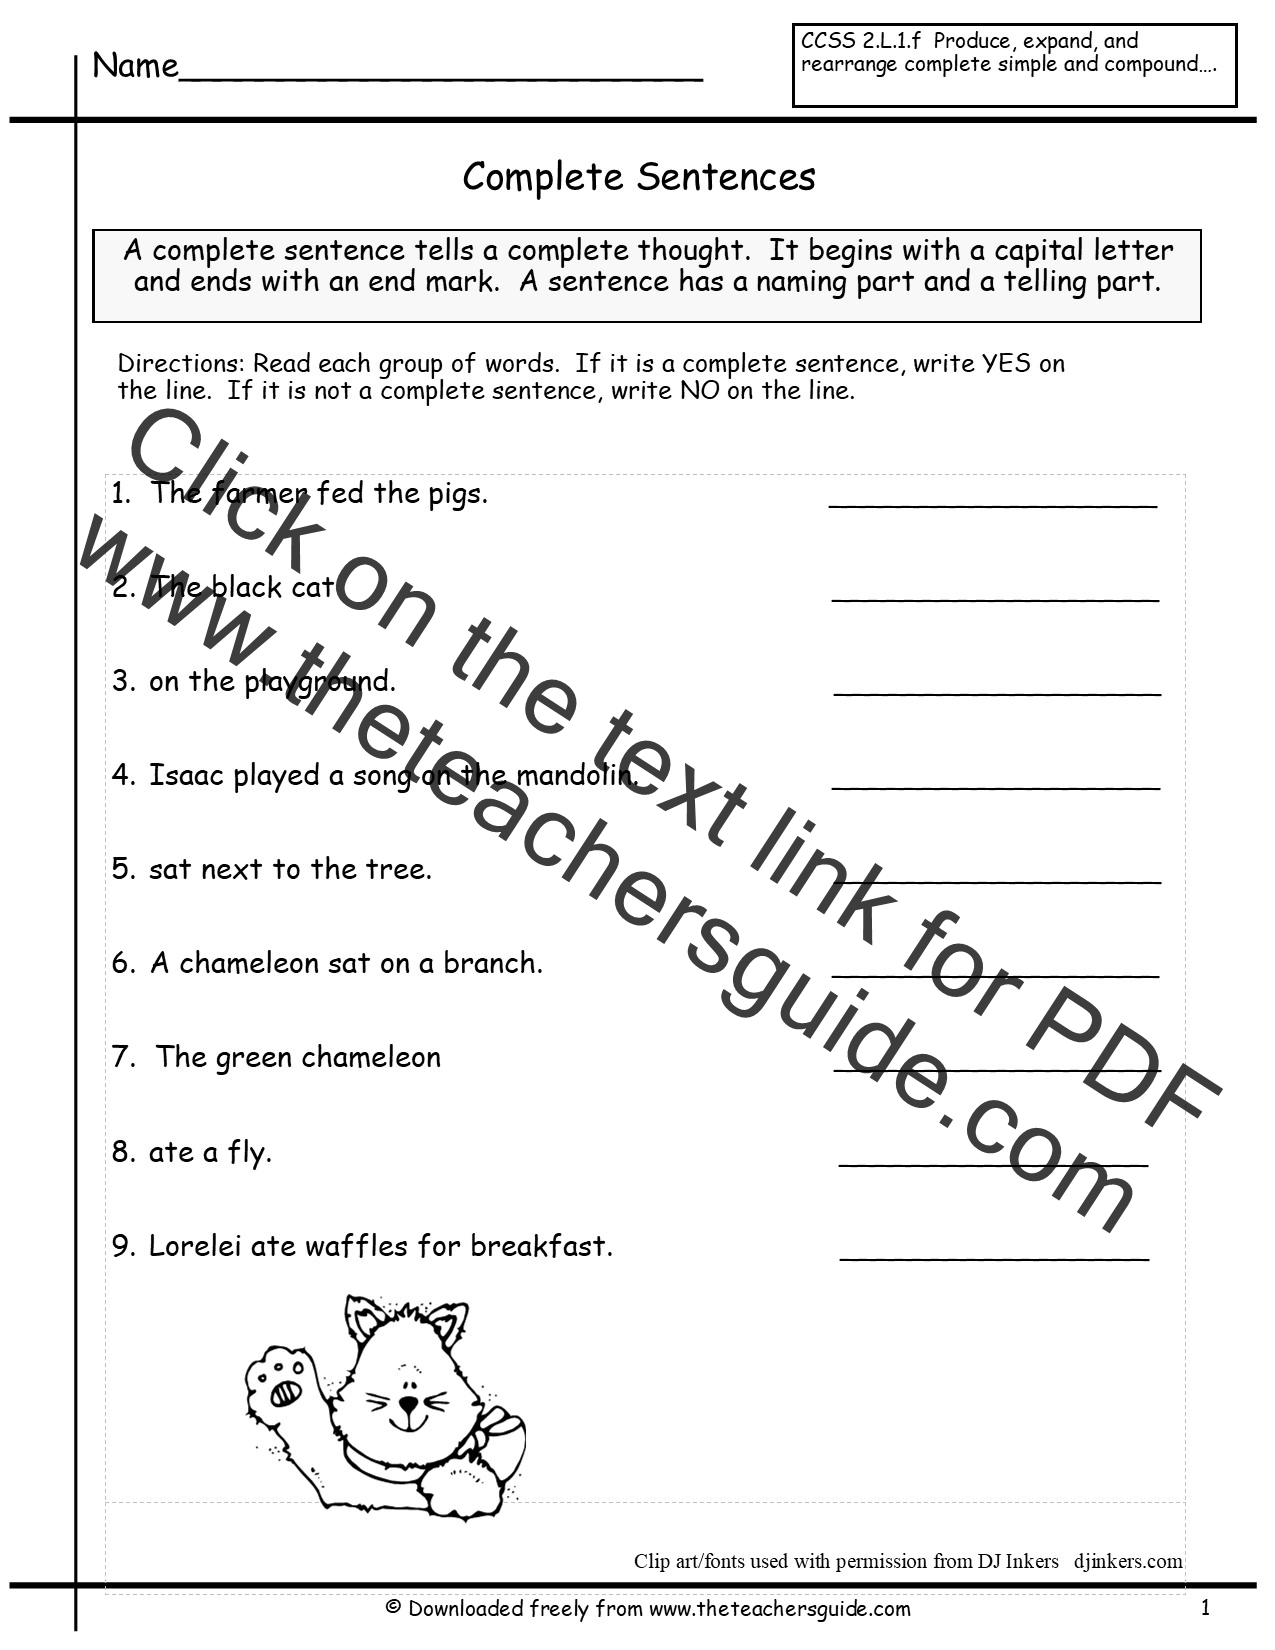 Free Writing And Language Arts From The Teacher S Guide